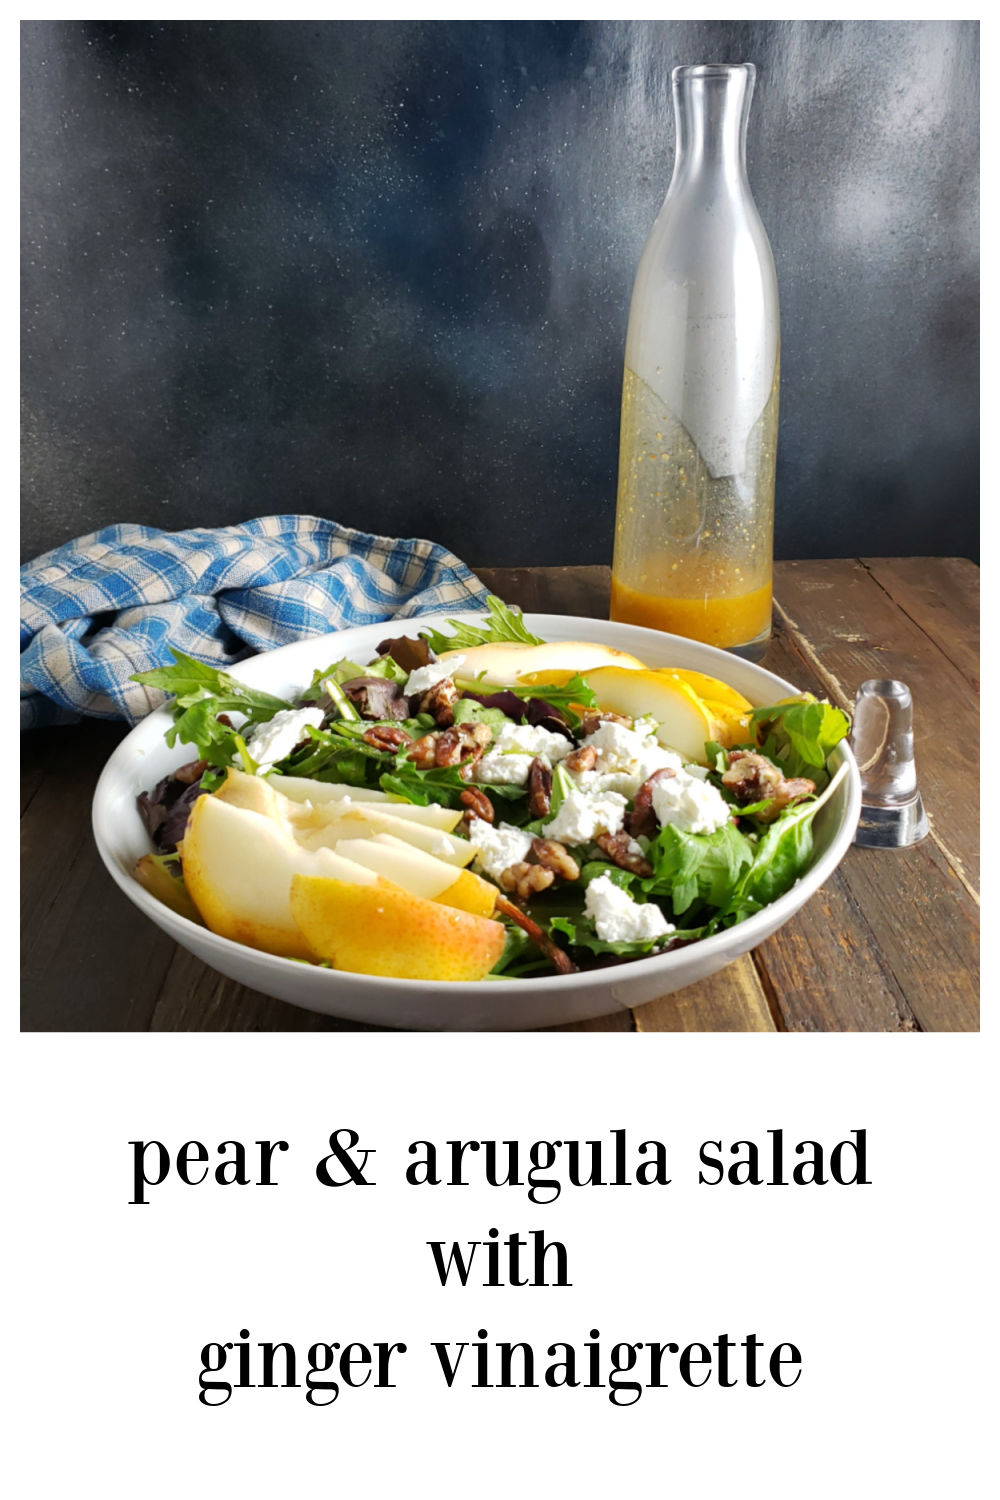 Arugula Pear Salad with Ginger Vinaigrette is gonna up your salad game. There goat cheese and some candied pecans but the dressing steal the show. #Arugula #Arugula&PearSalad #GingerVinaigrette #Salad